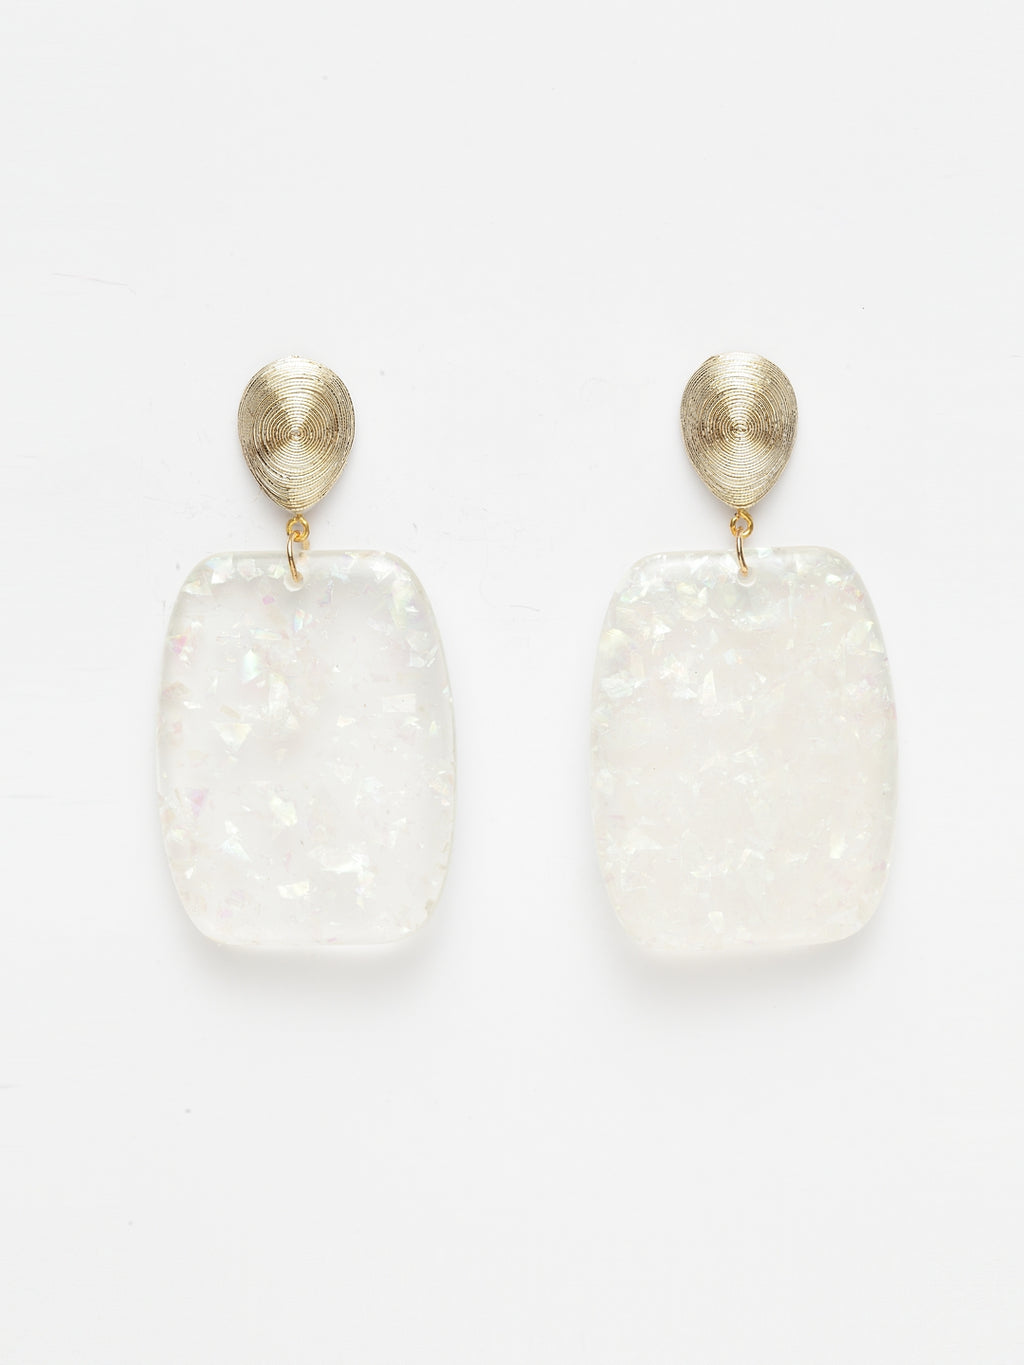 Avant-Garde Paris White Marble Textured Acrylic Earrings